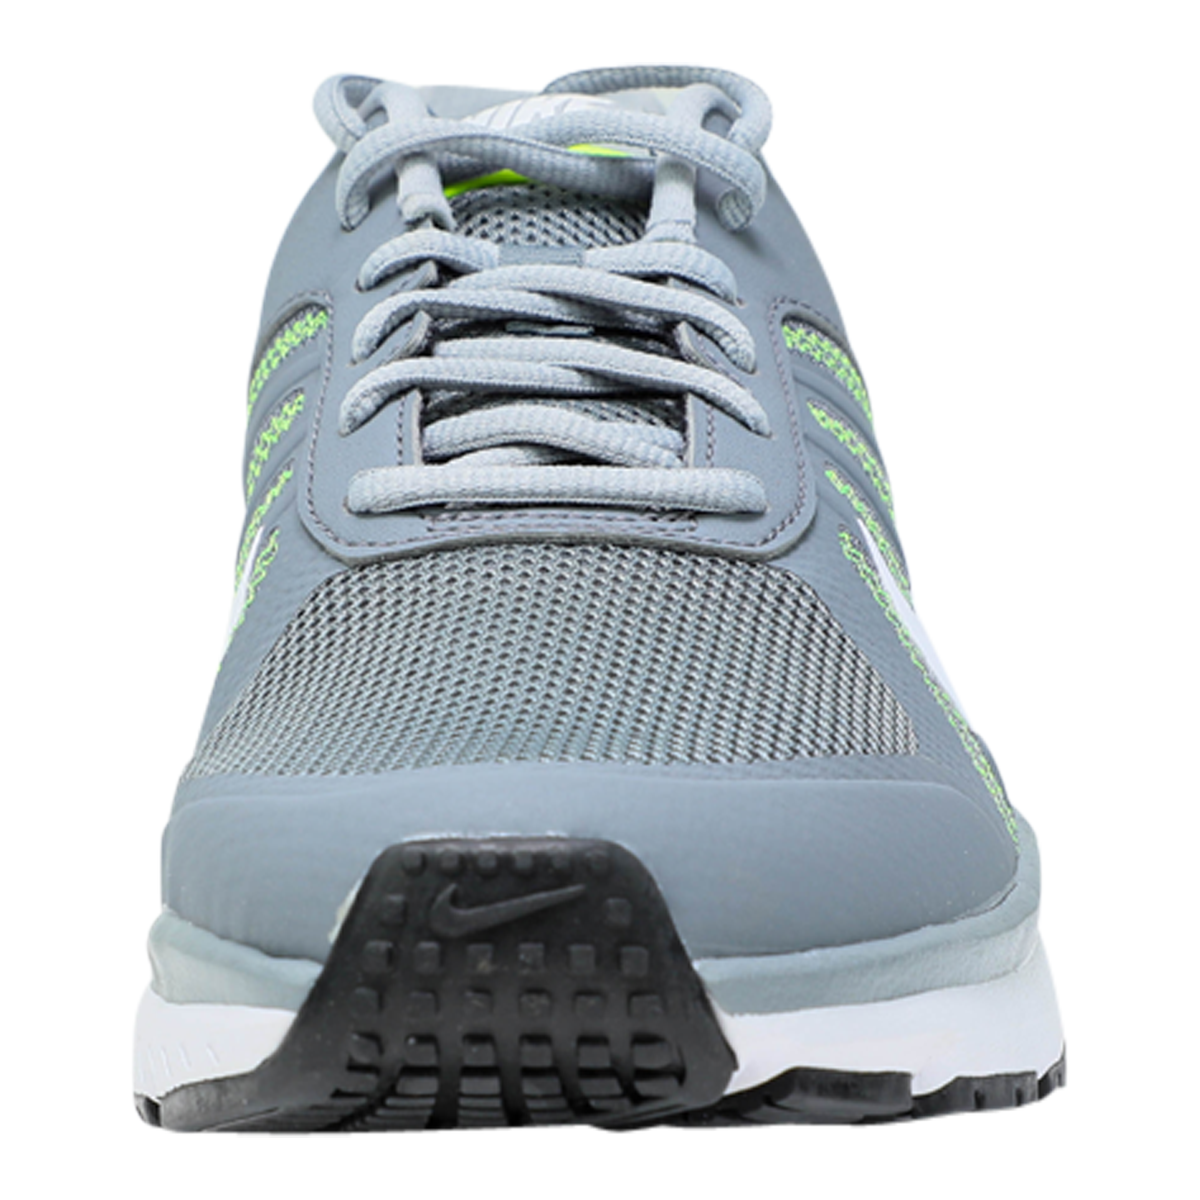 Nike-Men-039-s-Dart-12-MSL-Running-Shoes thumbnail 23